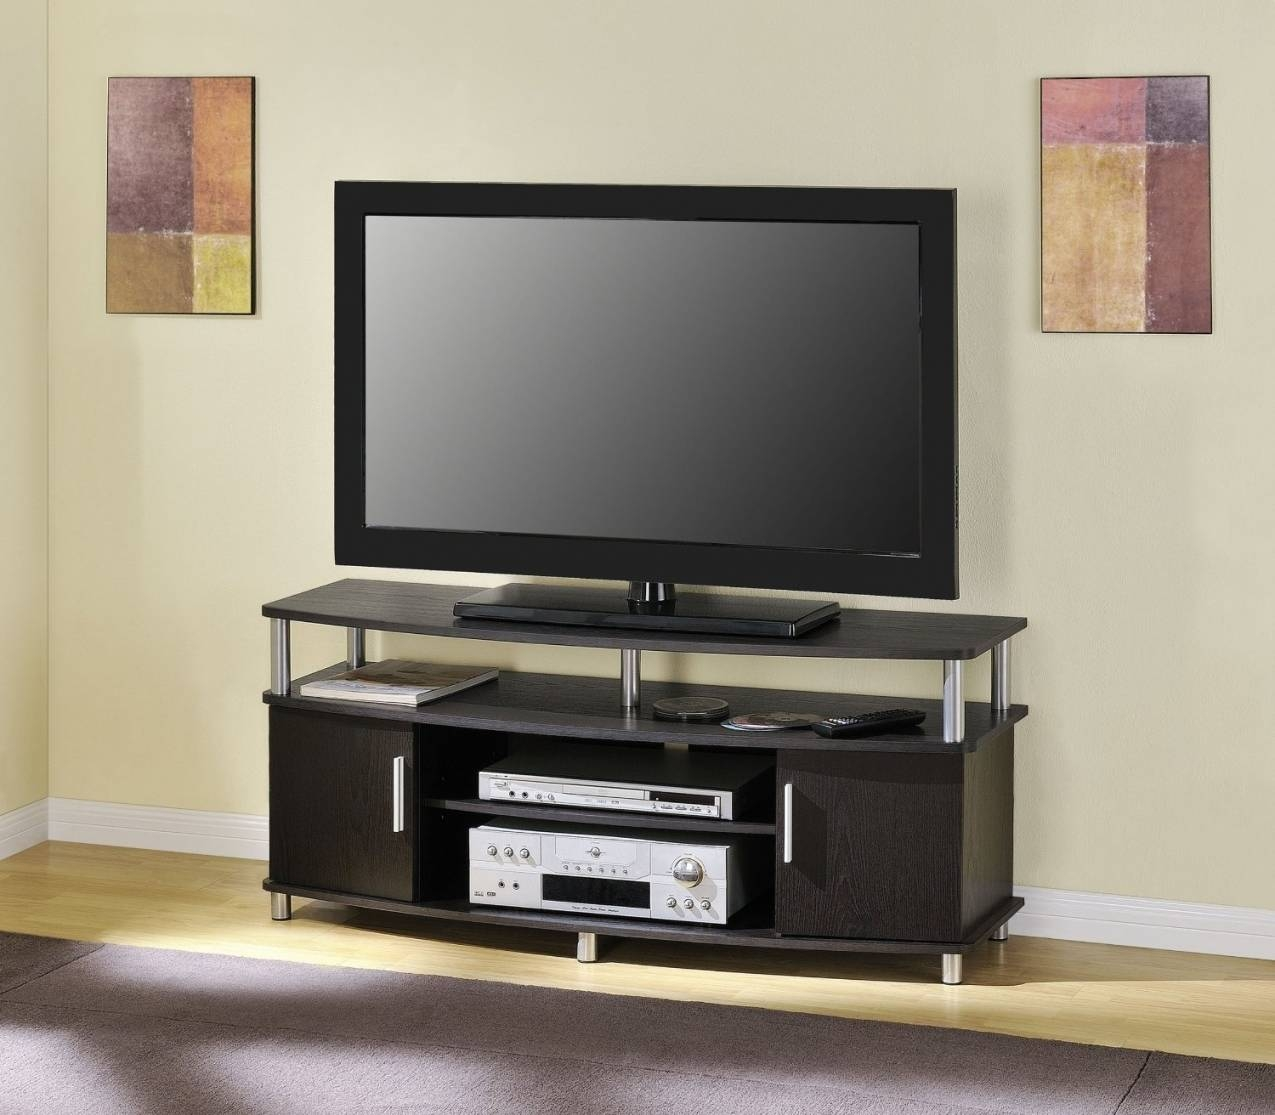 The 15 Best Collection of Modern Tv Stands for Flat Screens